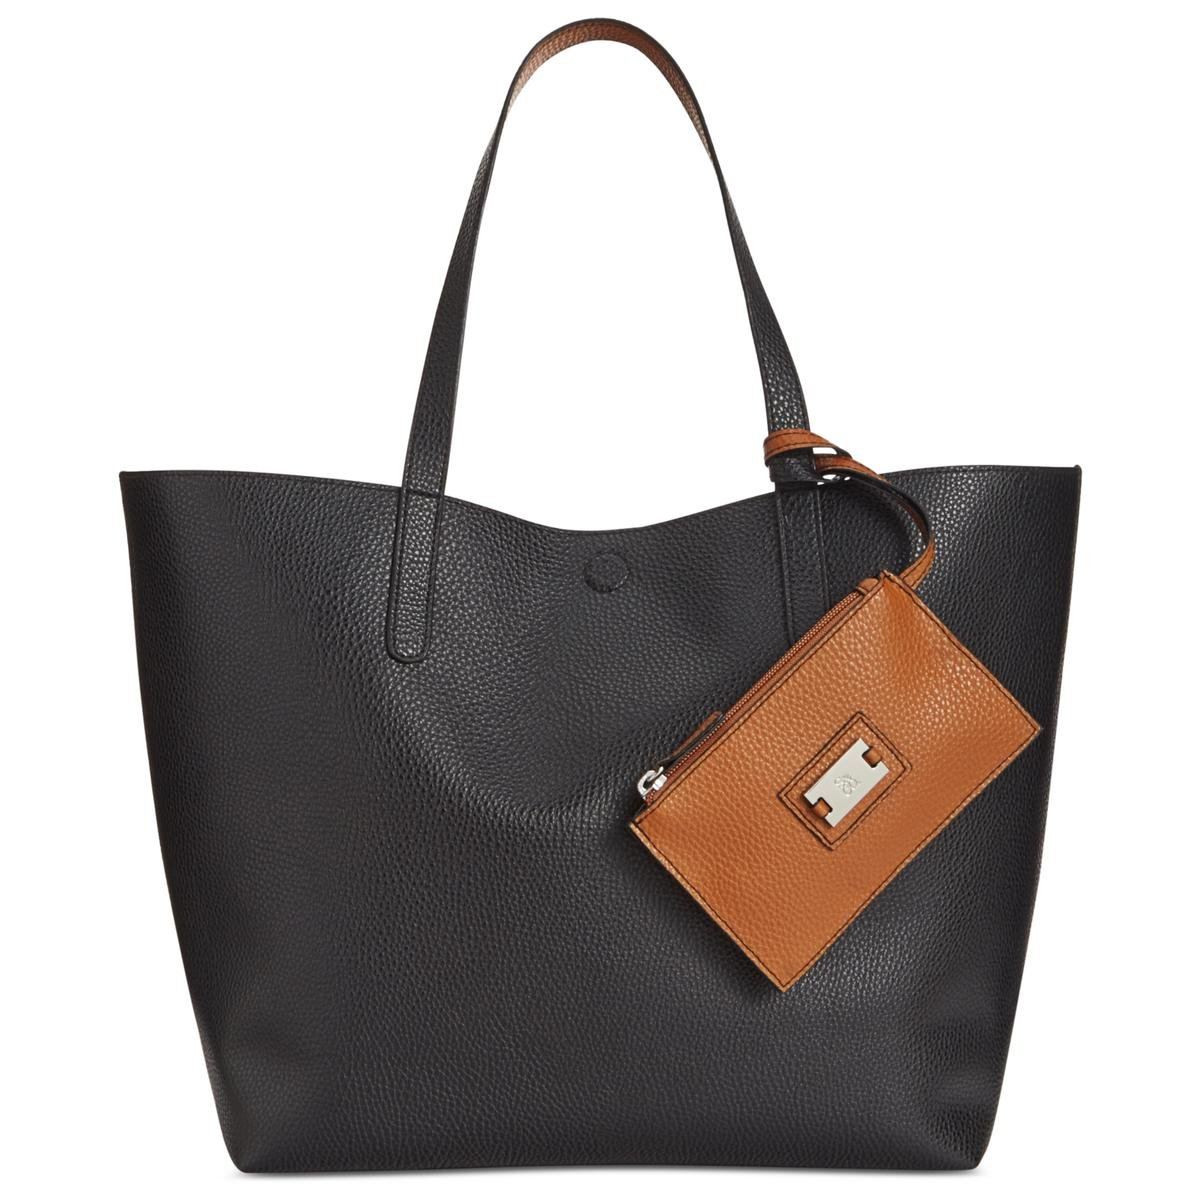 Style & Co. Womens Clean Cut Textured Faux Leather Tote Handbag Black Large